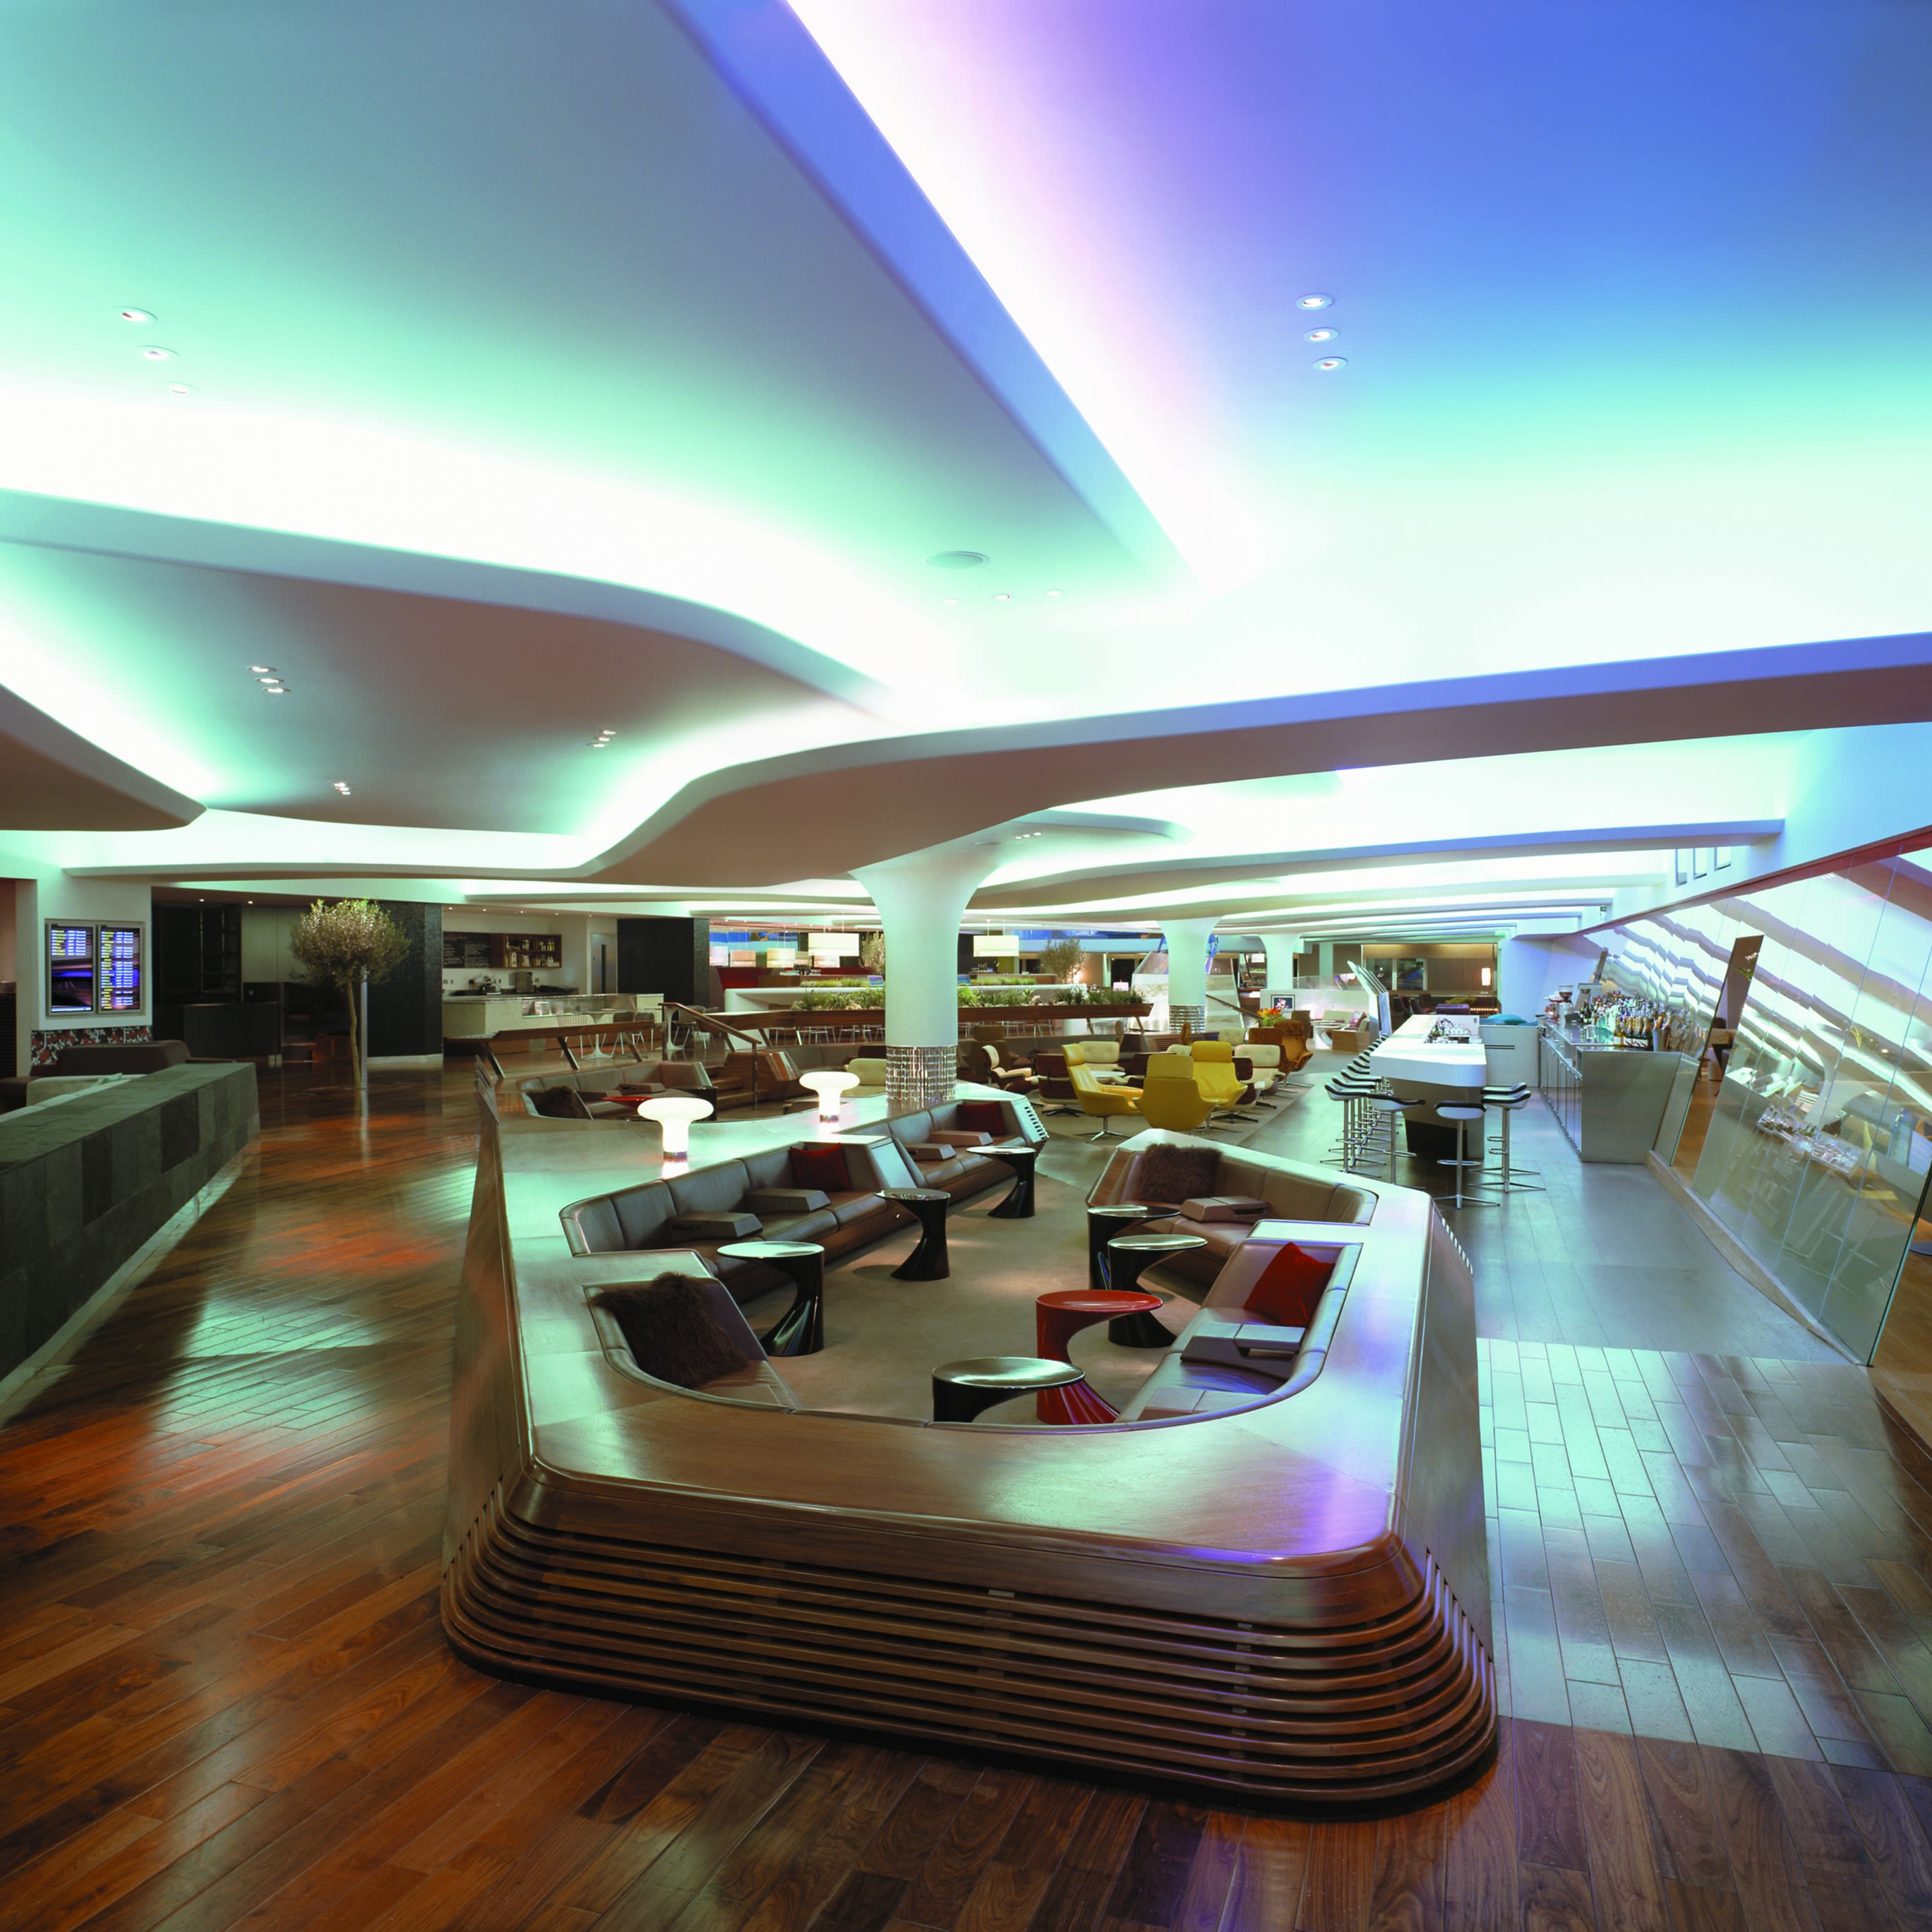 An image of Virgin Atlantic's first class lounge